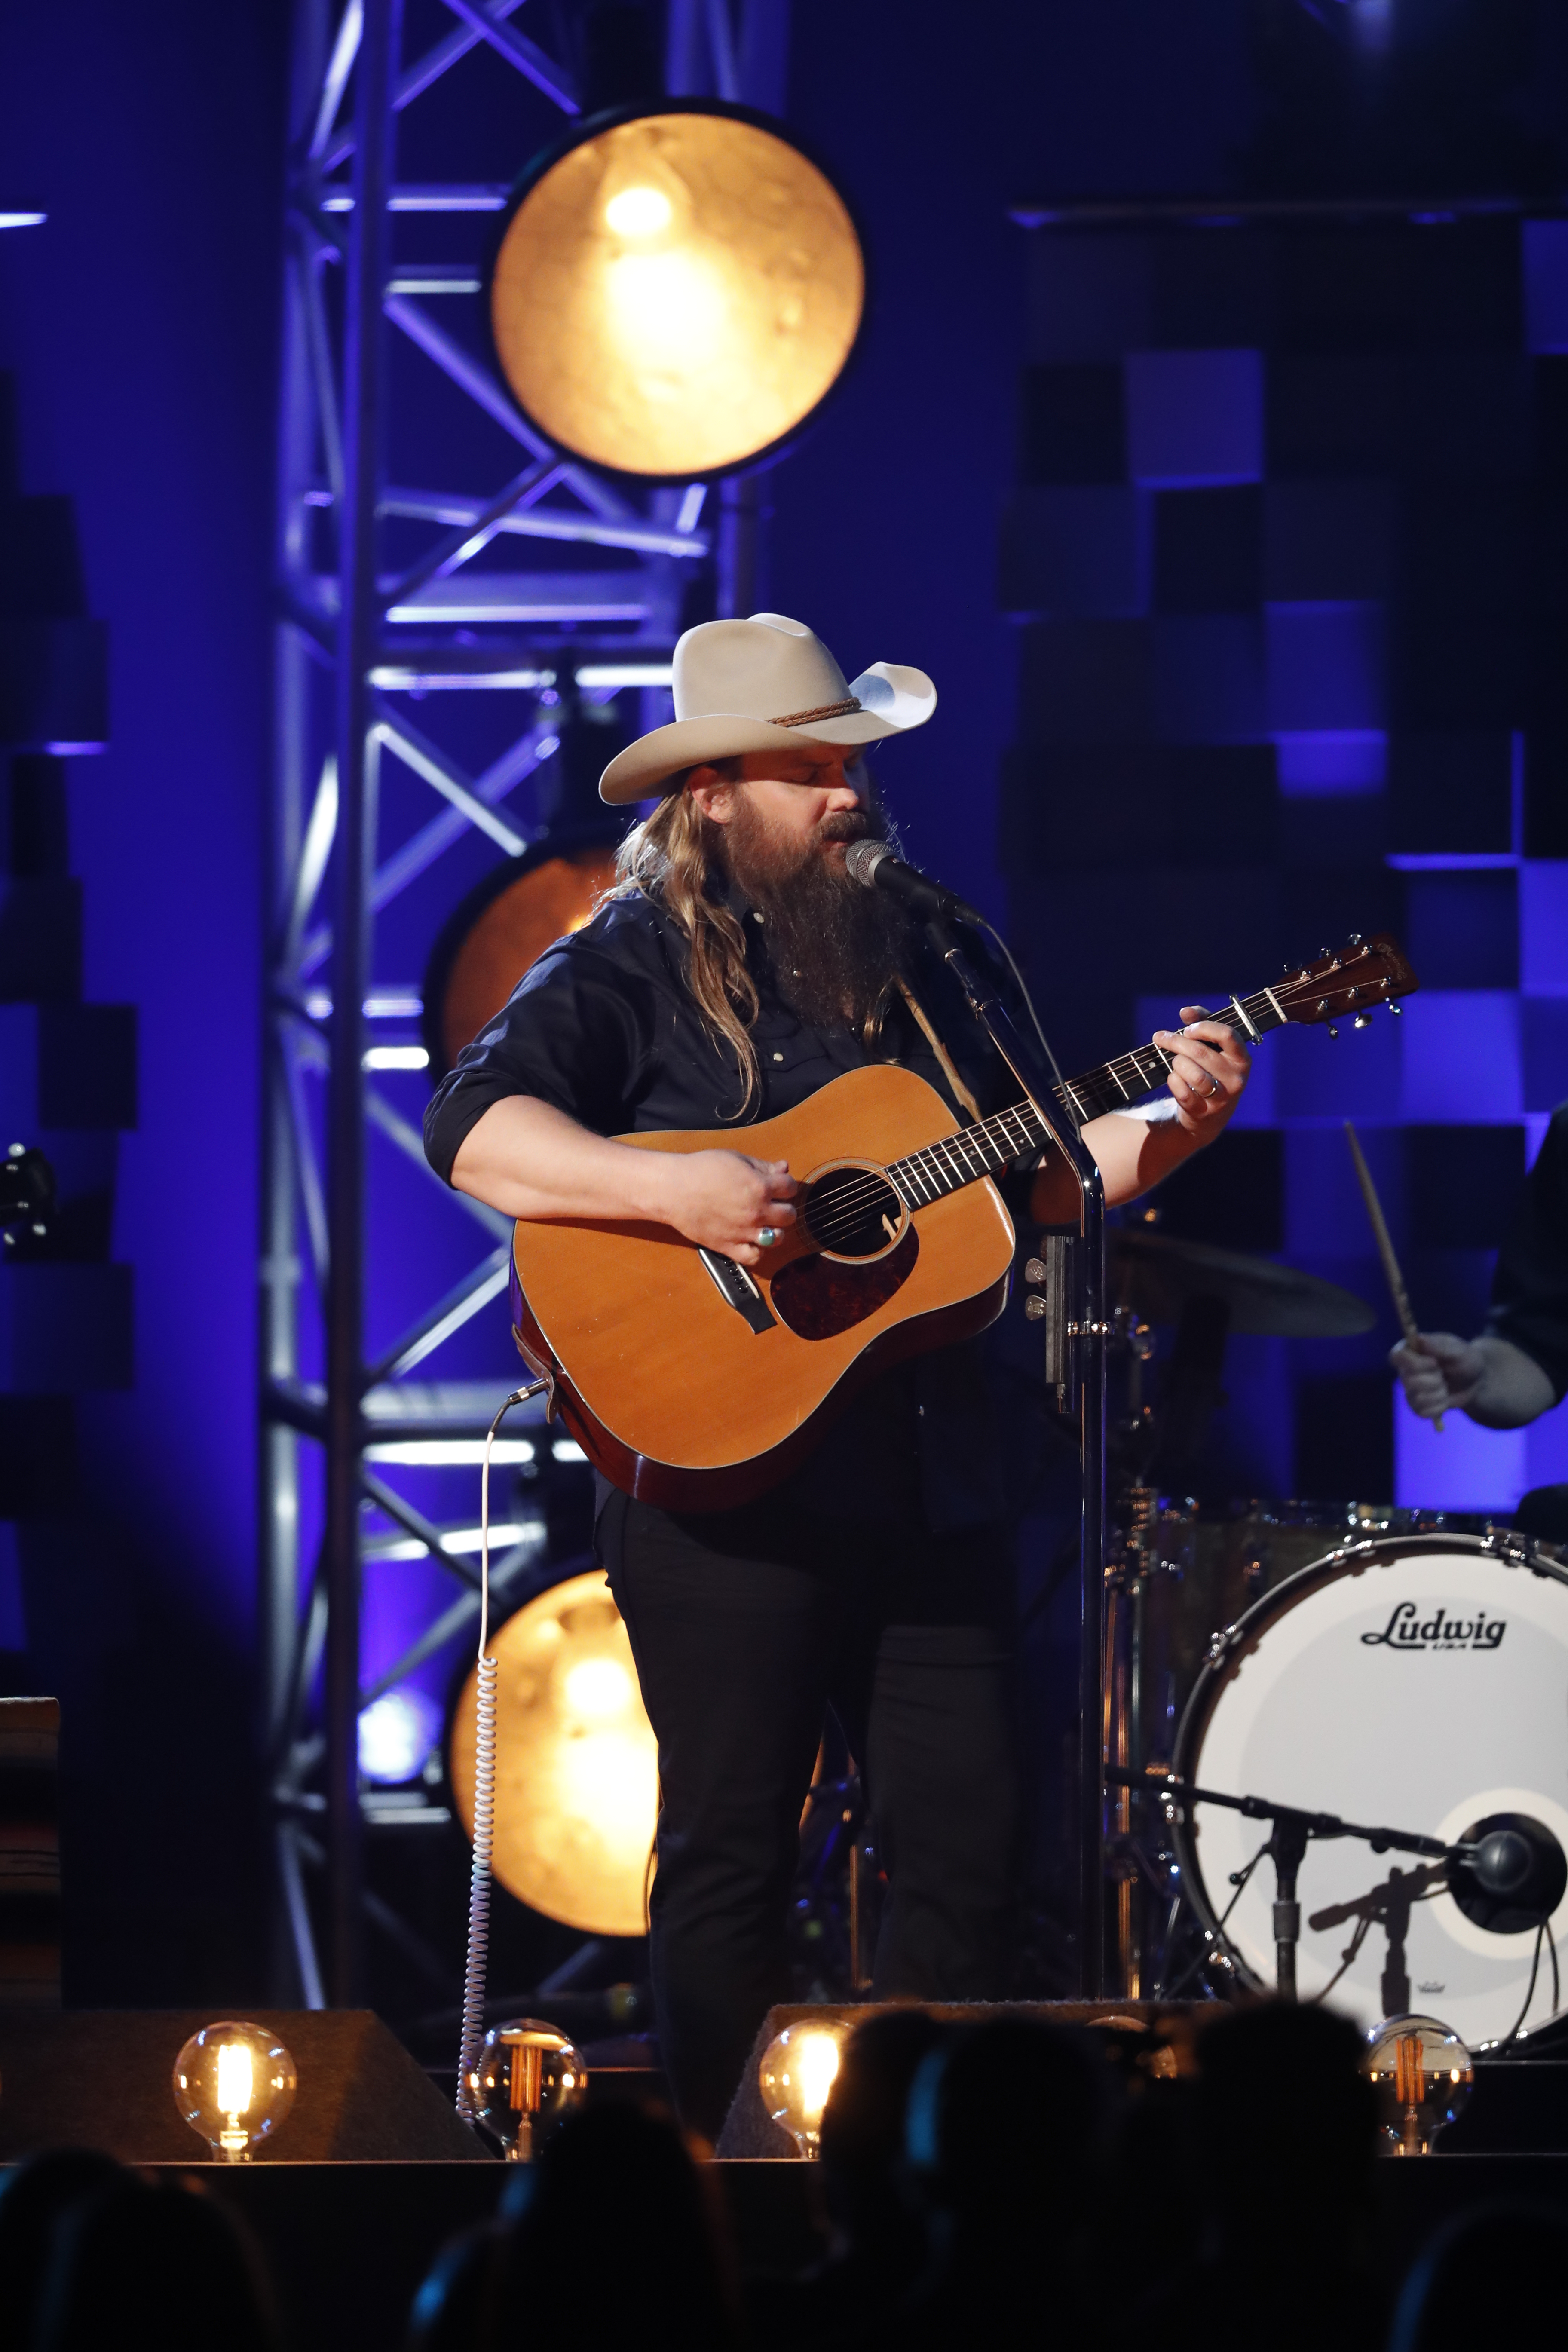 Chris Stapleton leads the pack with 8 ACM nominations